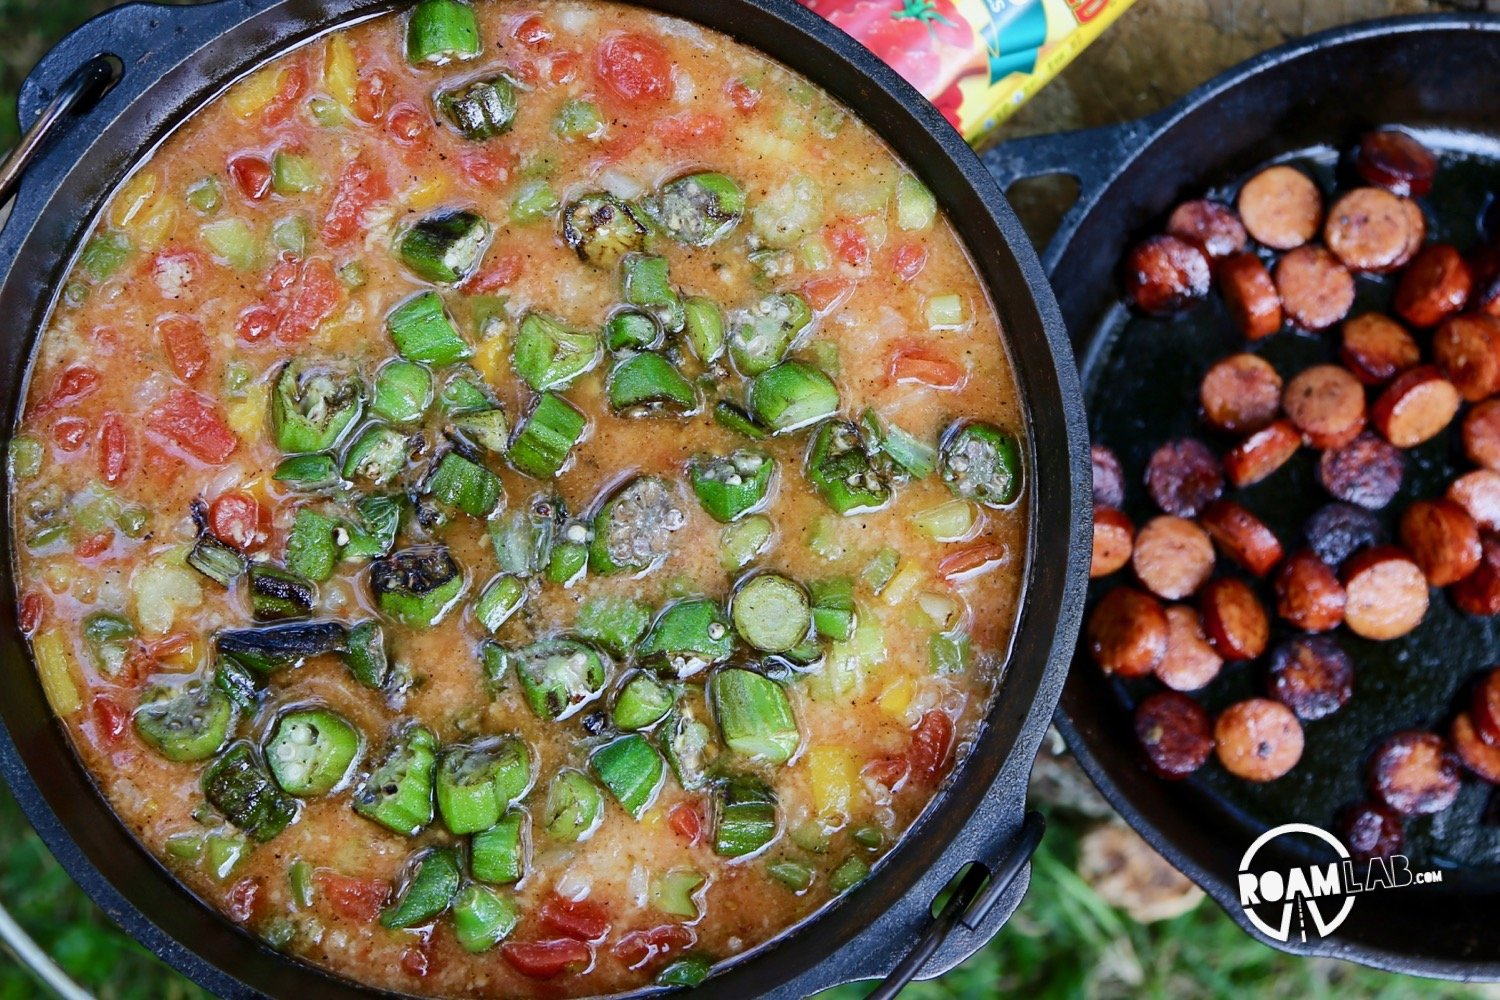 There are so many ways to cook a gumbo. Some are regional. Some are familial. Mine is practical. After traveling through Louisiana and our Great Gumbo Excursion last year in New Orleans, it is time to make Roam Lab's Campfire Gumbo.